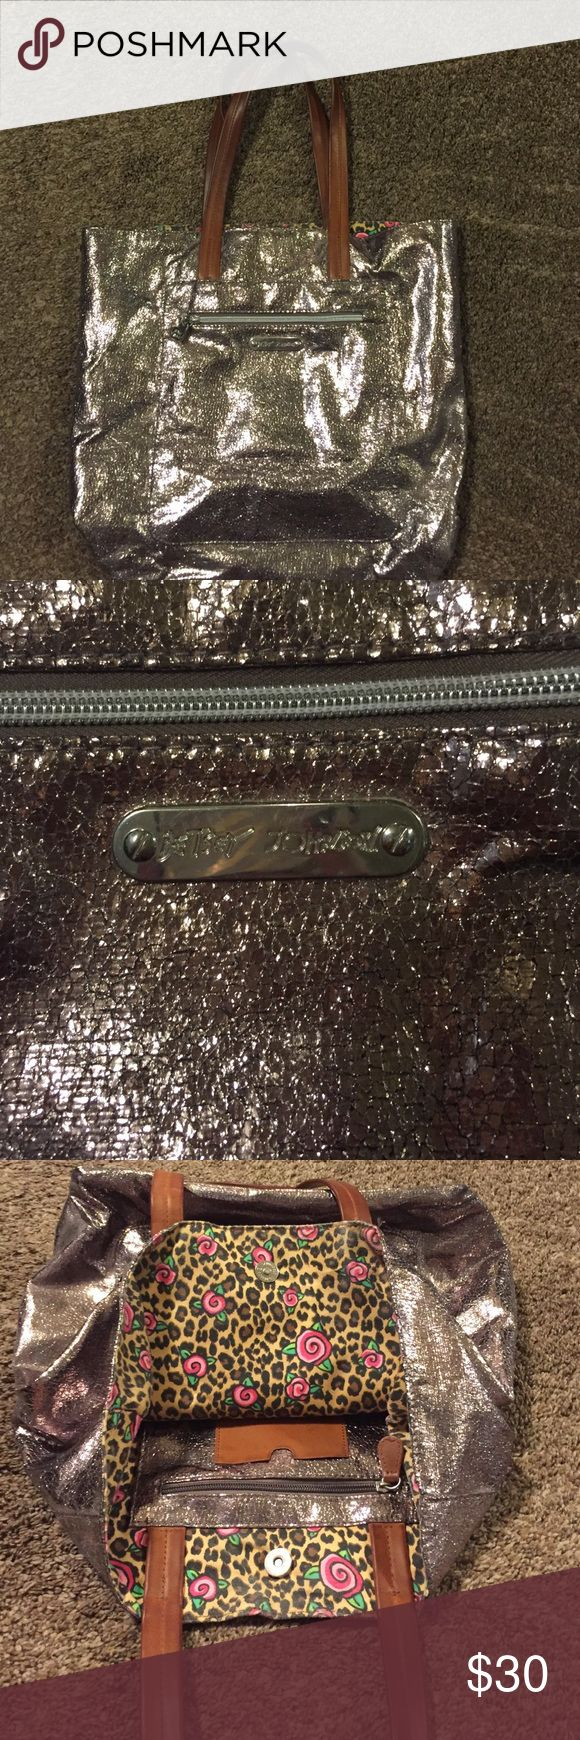 FINAL PRICE $11 Betsey Johnson Tote Bag Betsey Johnson Metallic purple/grey Tote Bag. Zipped compartment on outside and inside of bag. Betsey Johnson Bags Totes